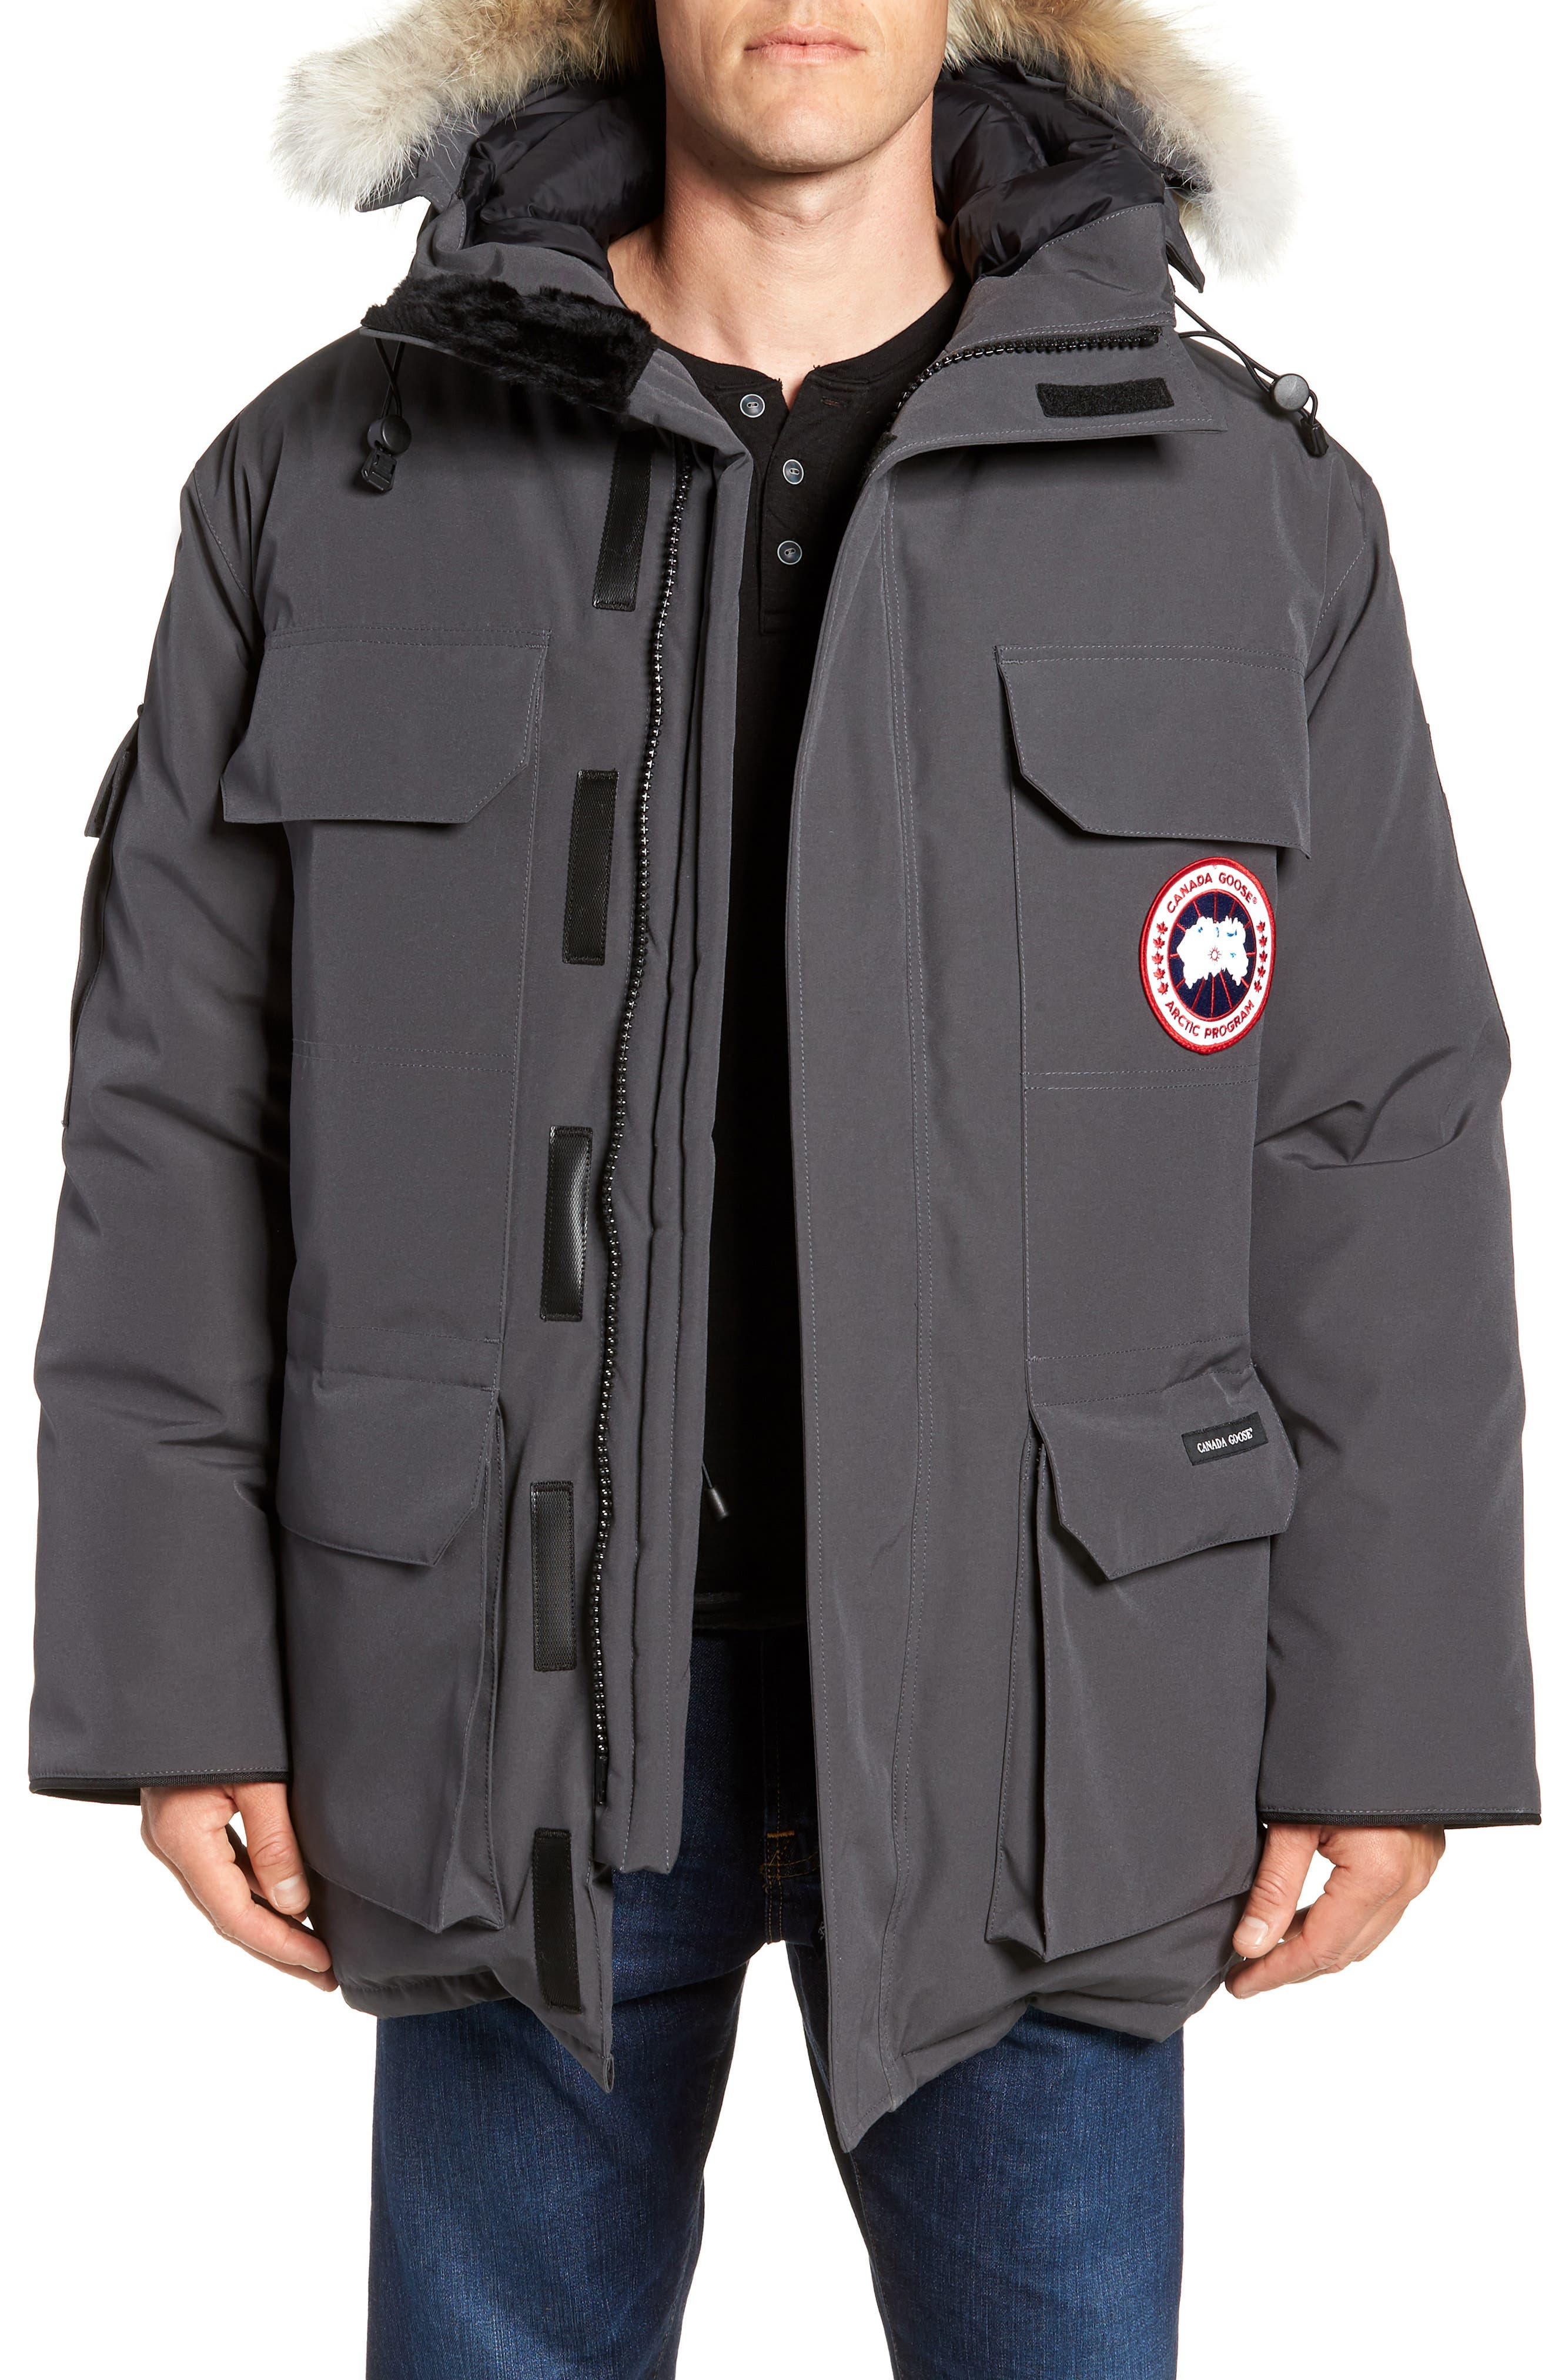 Canada Goose Pbi Expedition Regular Fit Down Parka With Genuine Coyote Fur Trim, Grey